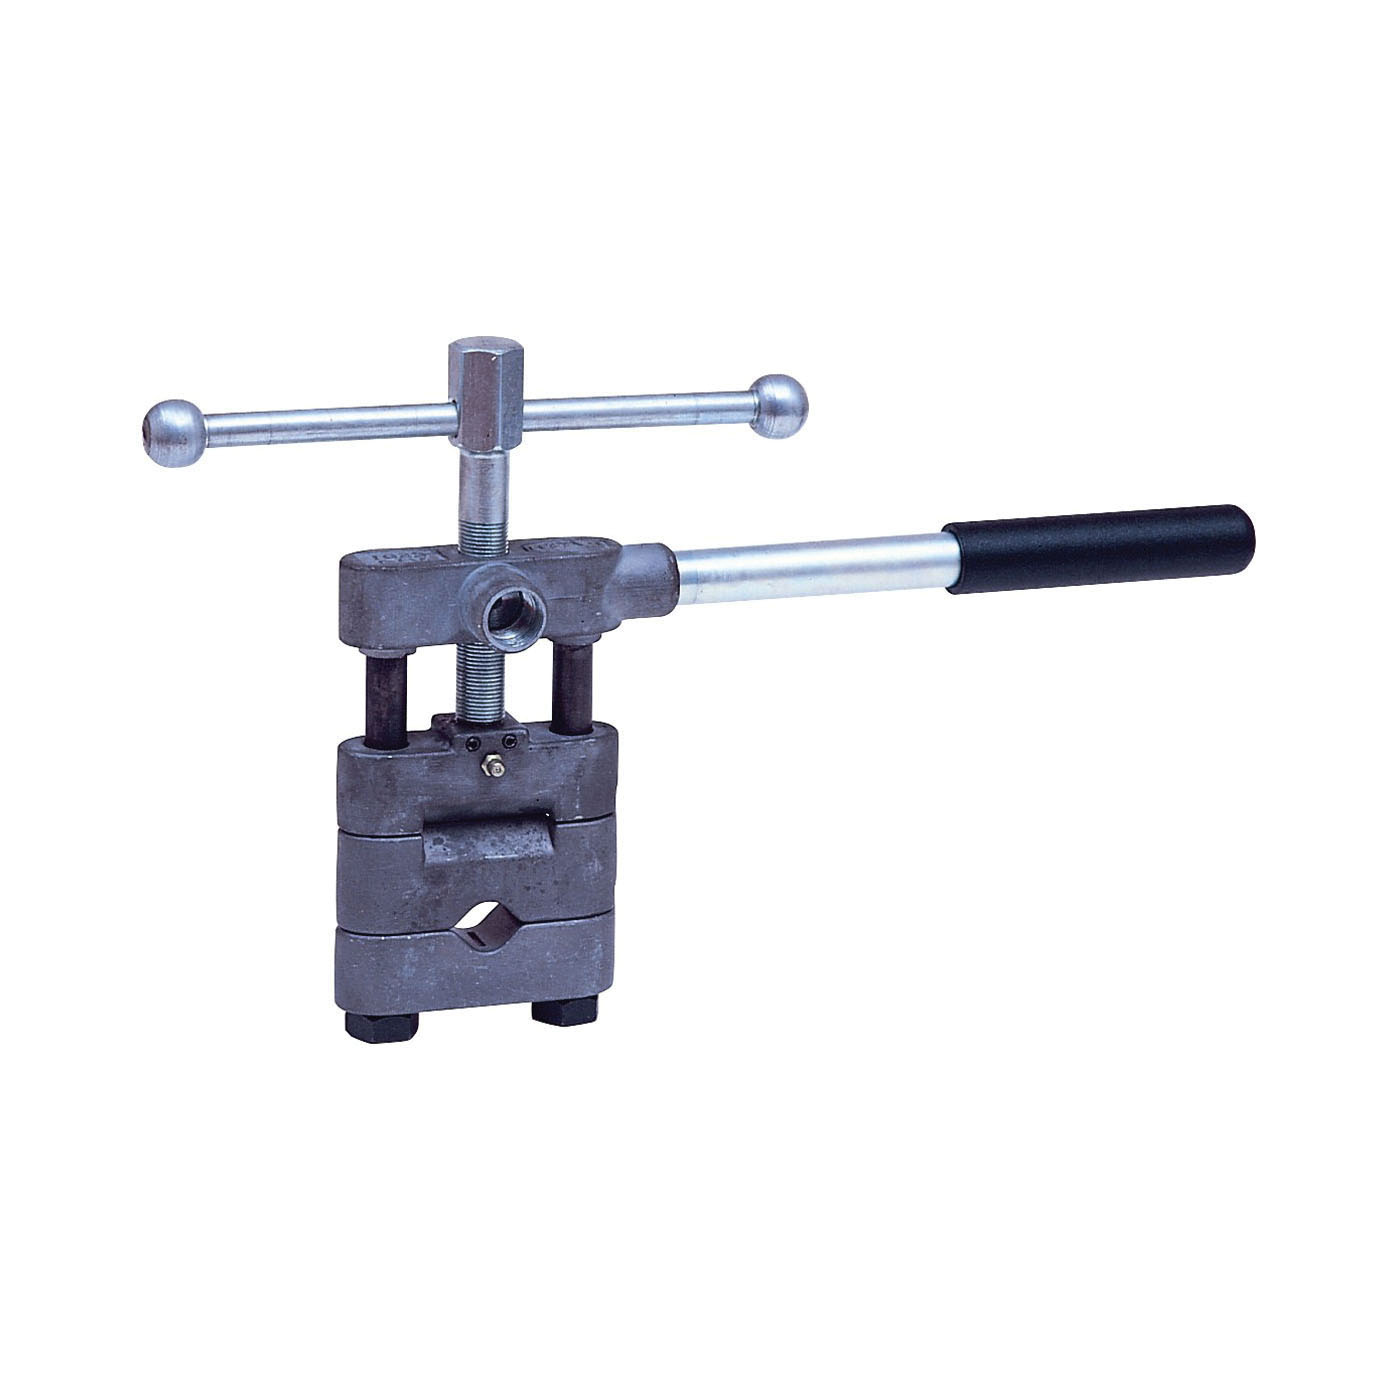 Reed 08200 Shut Off Tool, 3/4 to 1 in Capacity